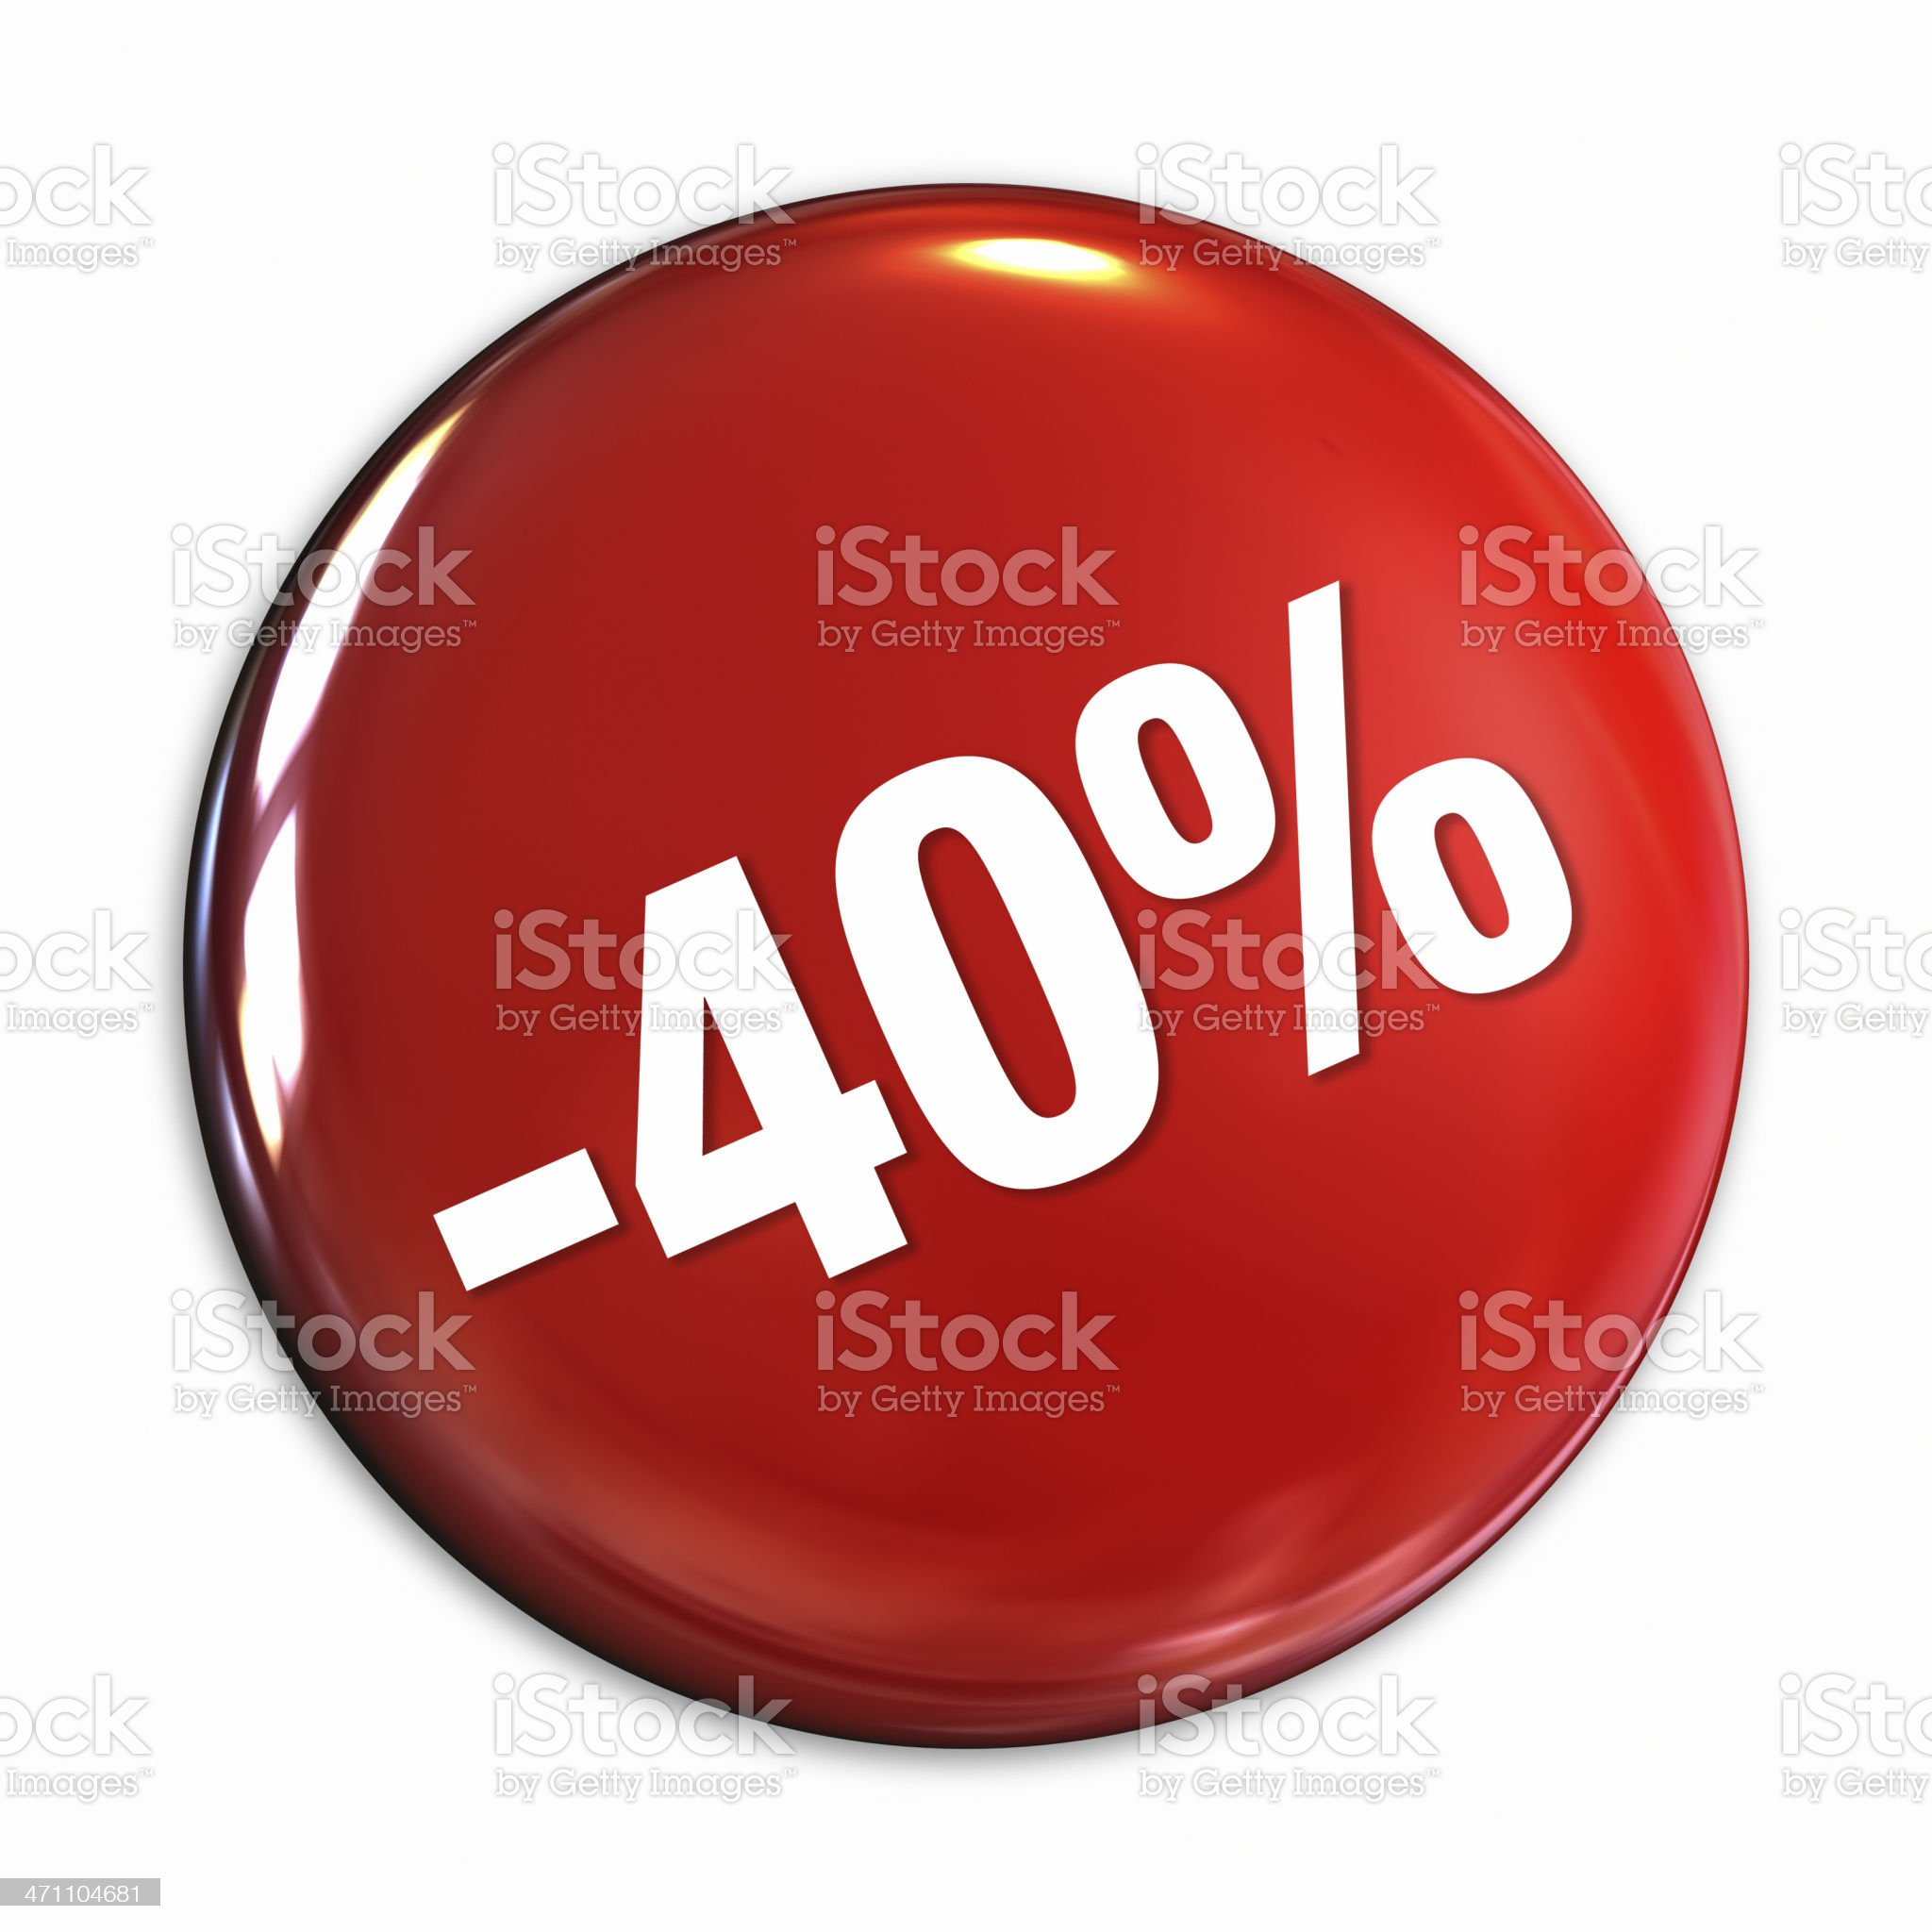 Discount Series badge royalty-free stock photo